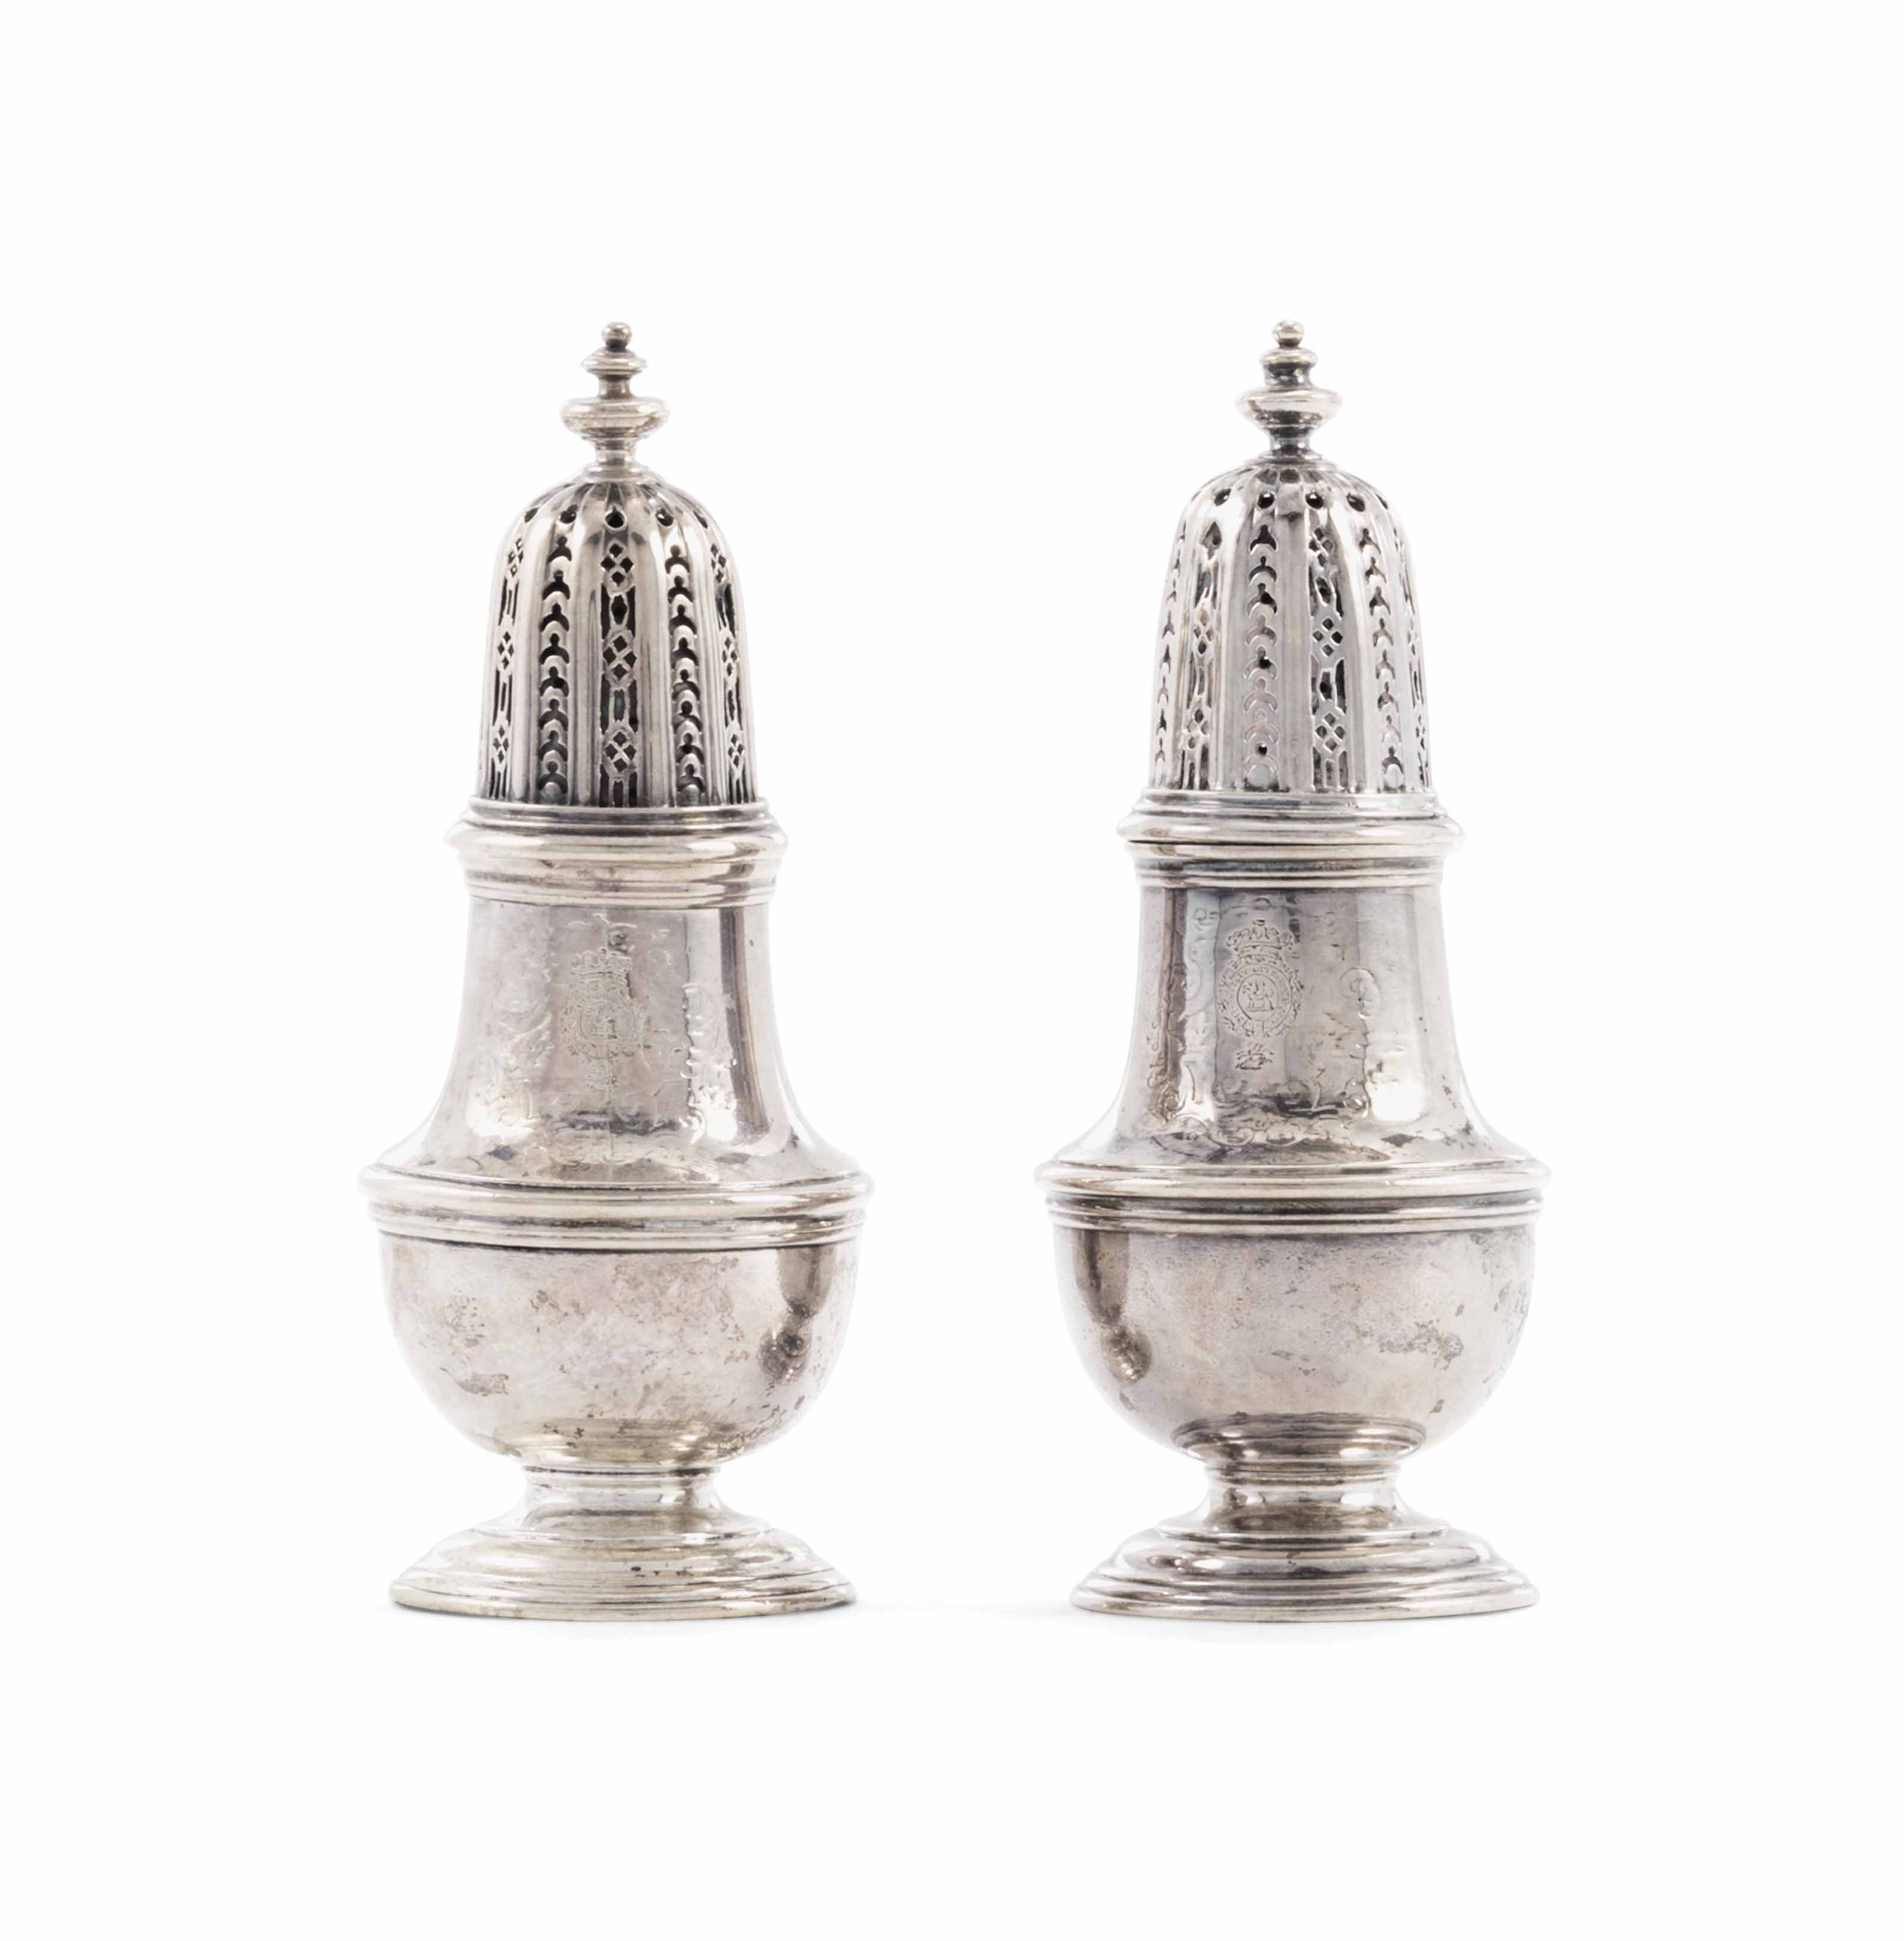 A PAIR OF GEORGE II SILVER CASTERS